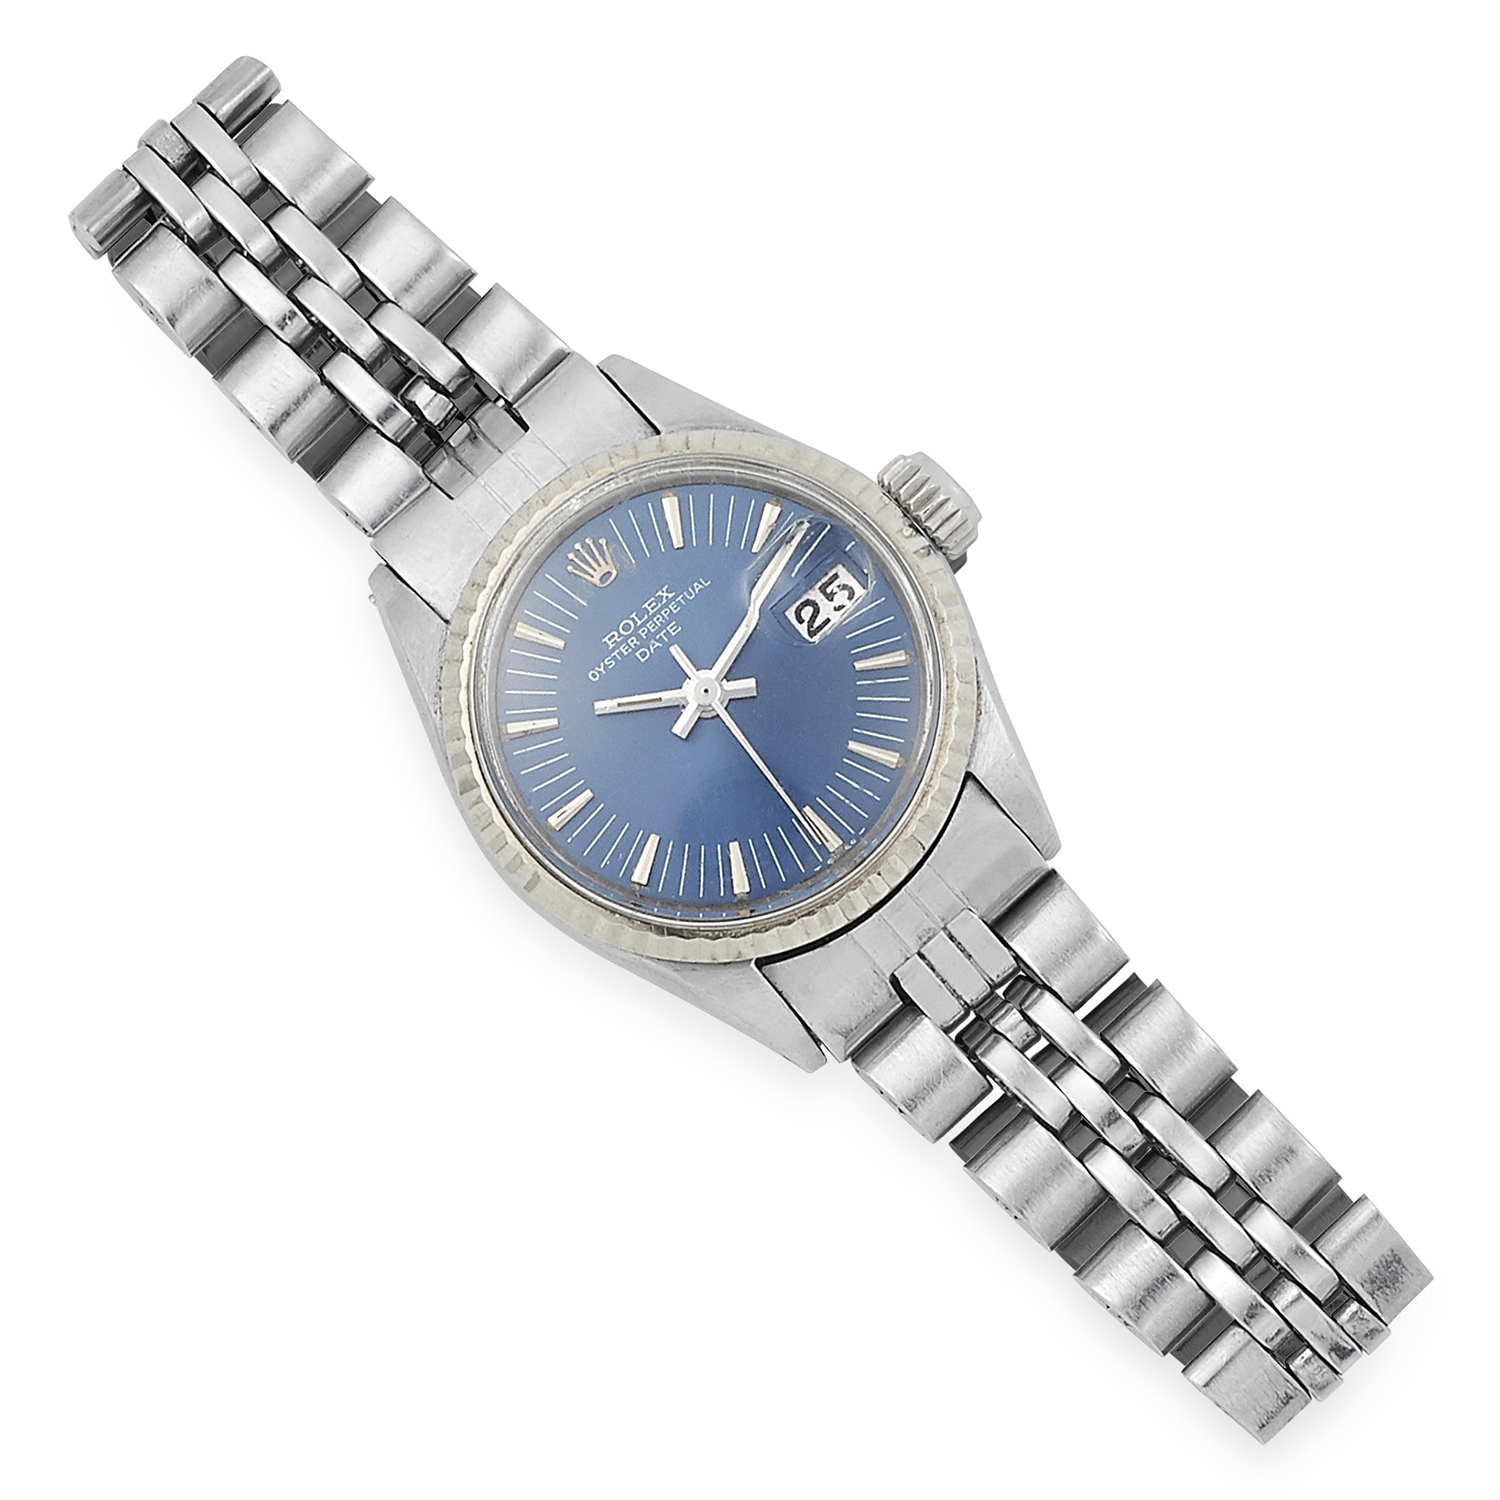 LADIES OYSTER PERPECTUAL WRISTWATCH, ROLEX with blue dial, 38.1g.